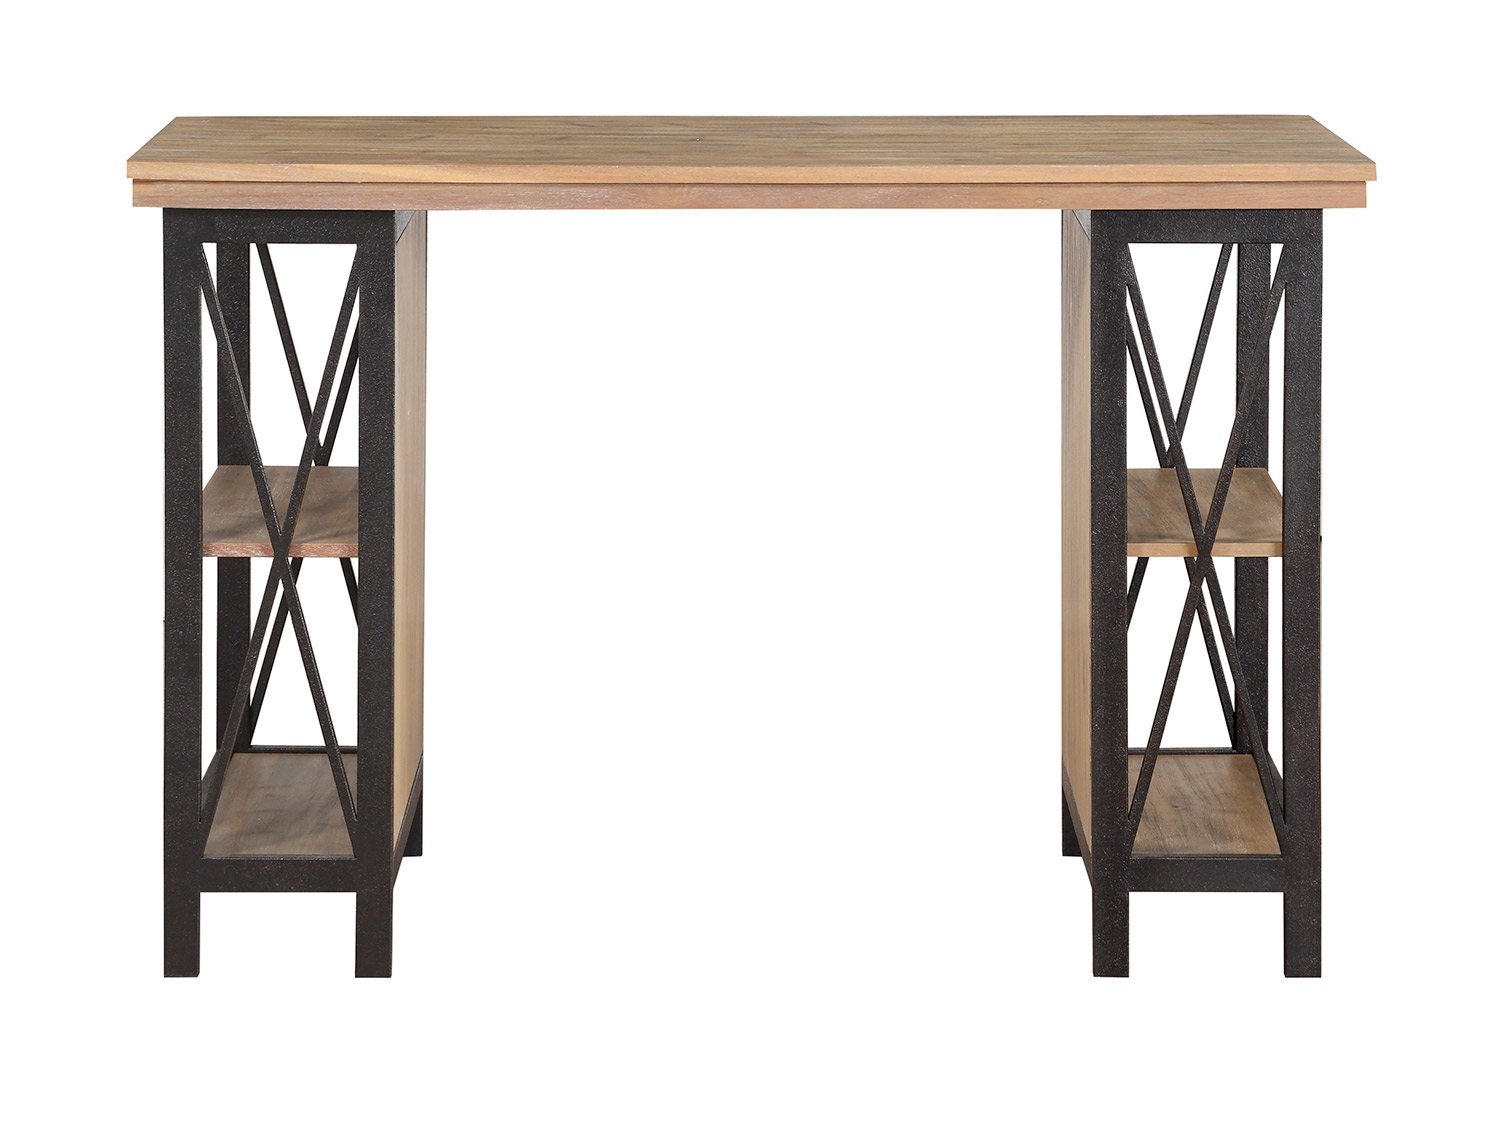 Homelegance Penpoint Counter Height Writing Desk - Rustic